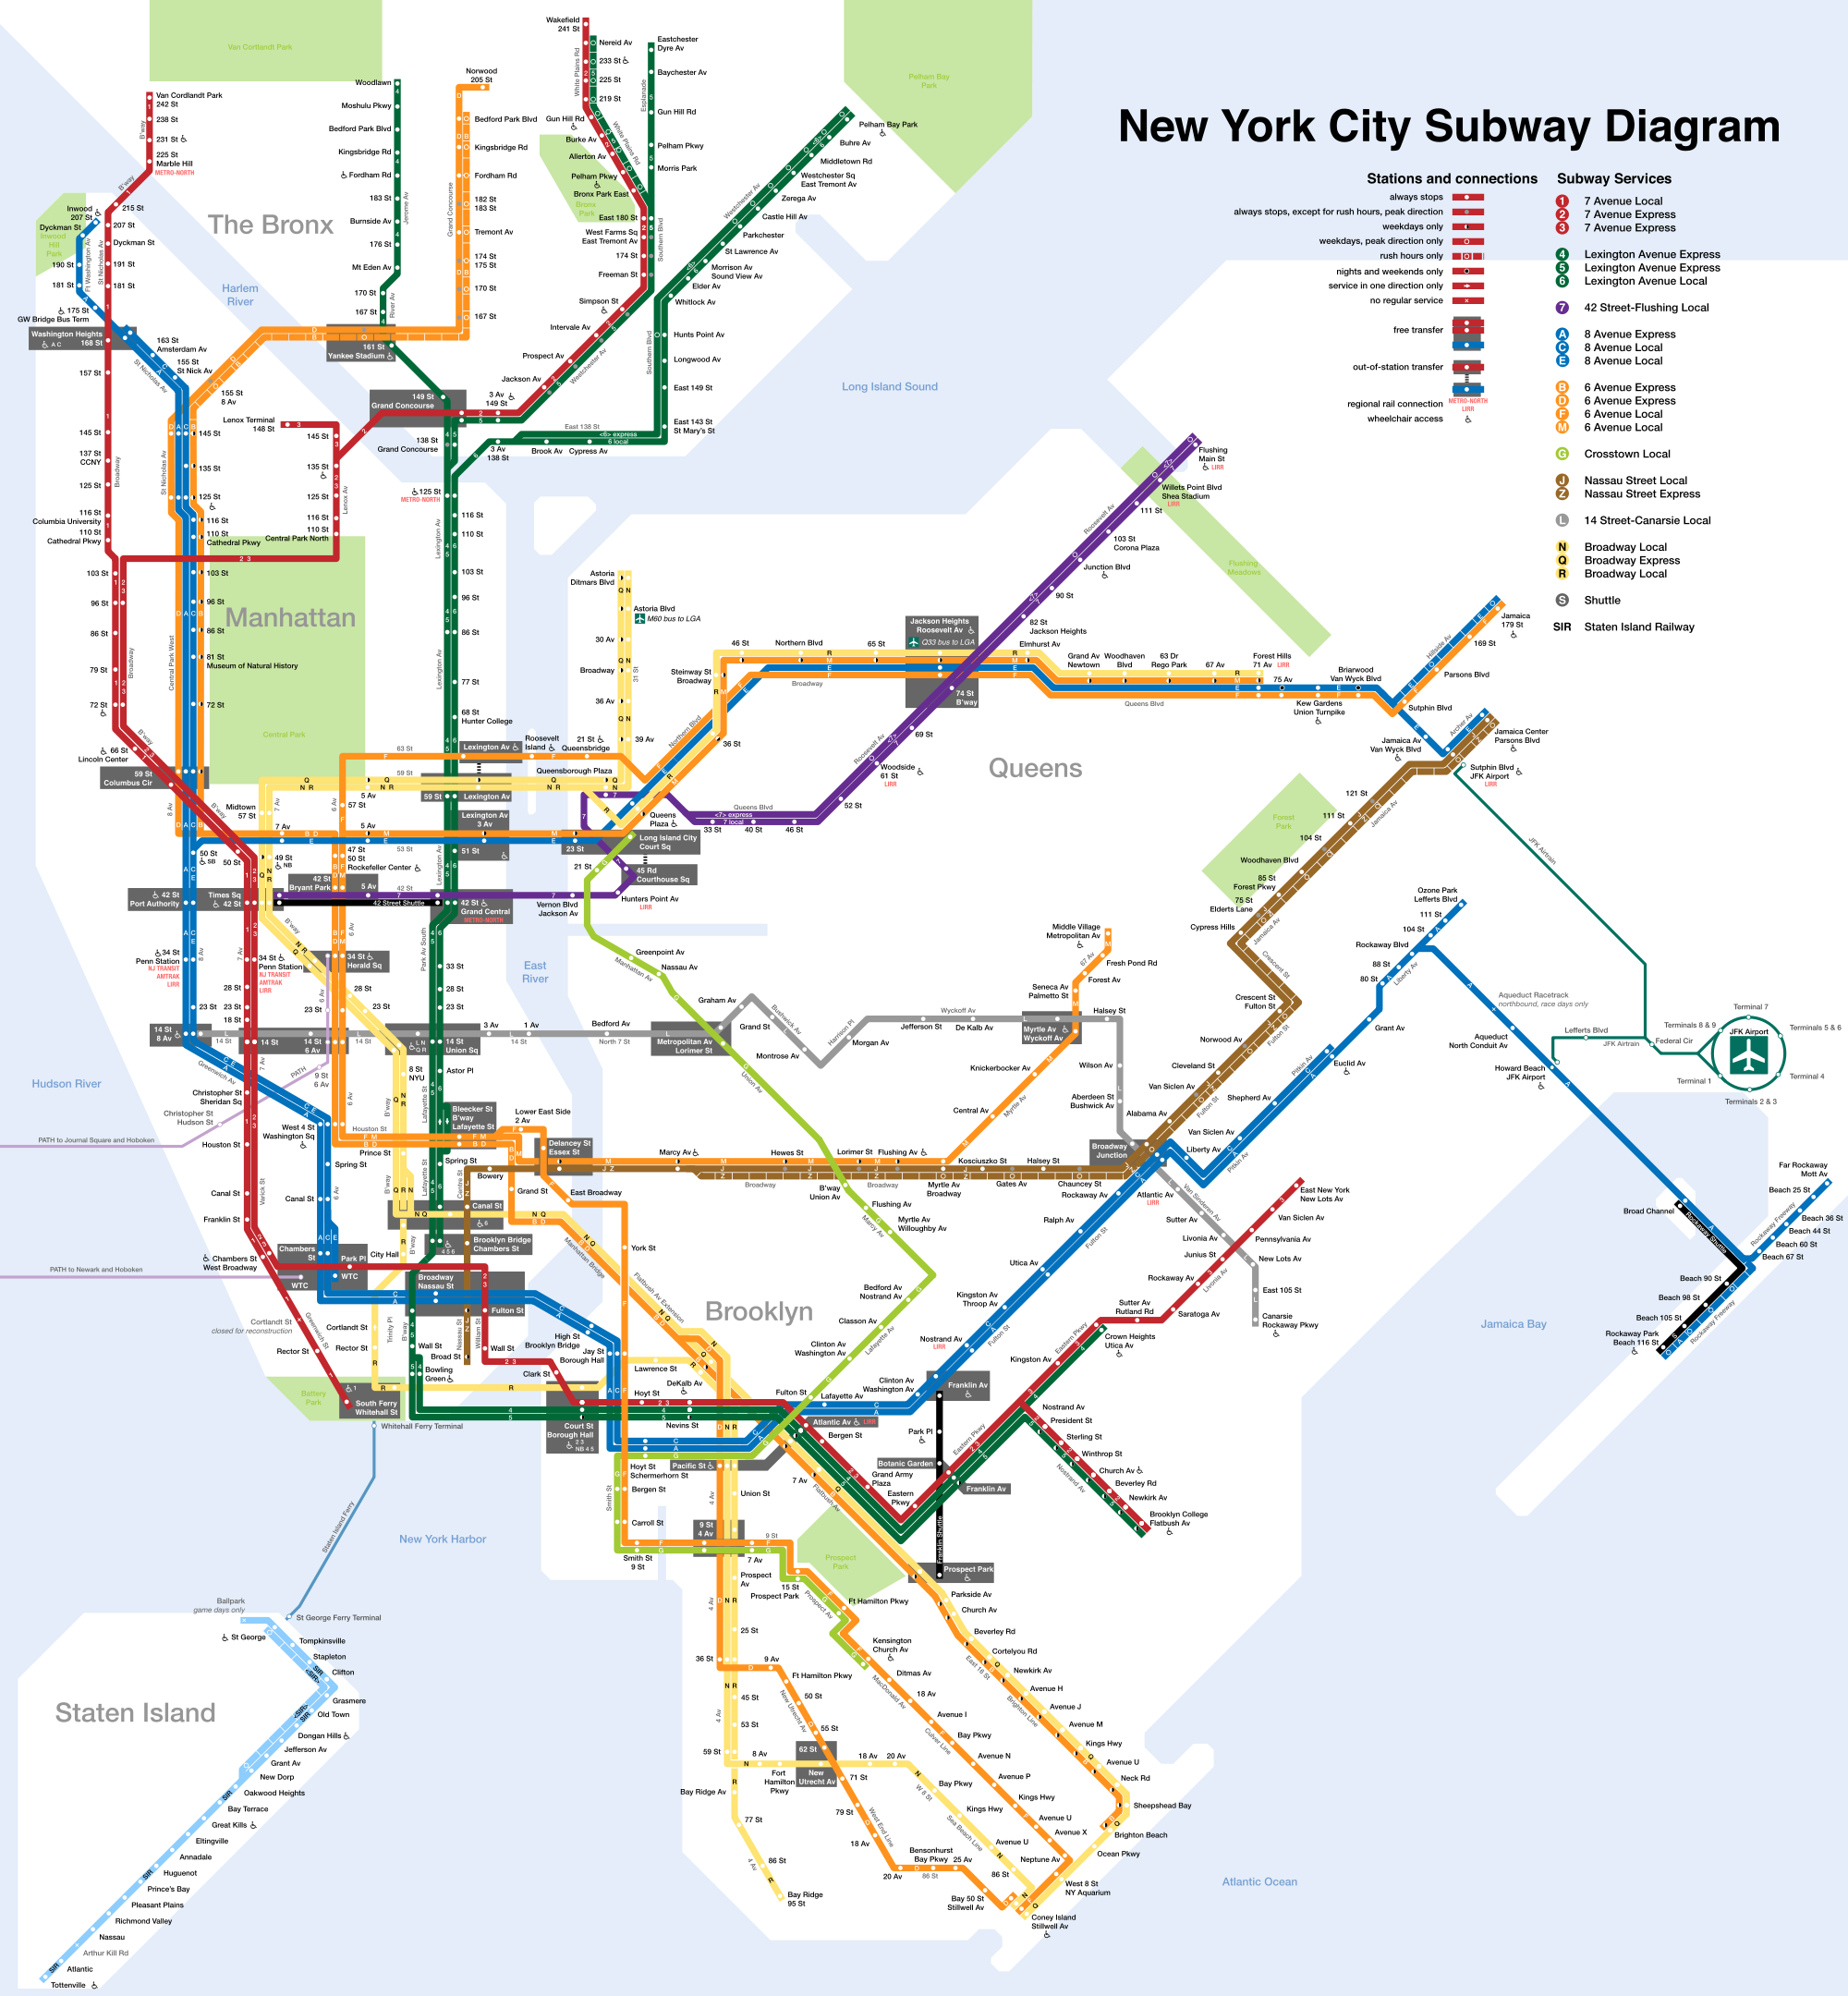 Subway Map For New York City.Printable New York City Map New York City Subway Map Page Below